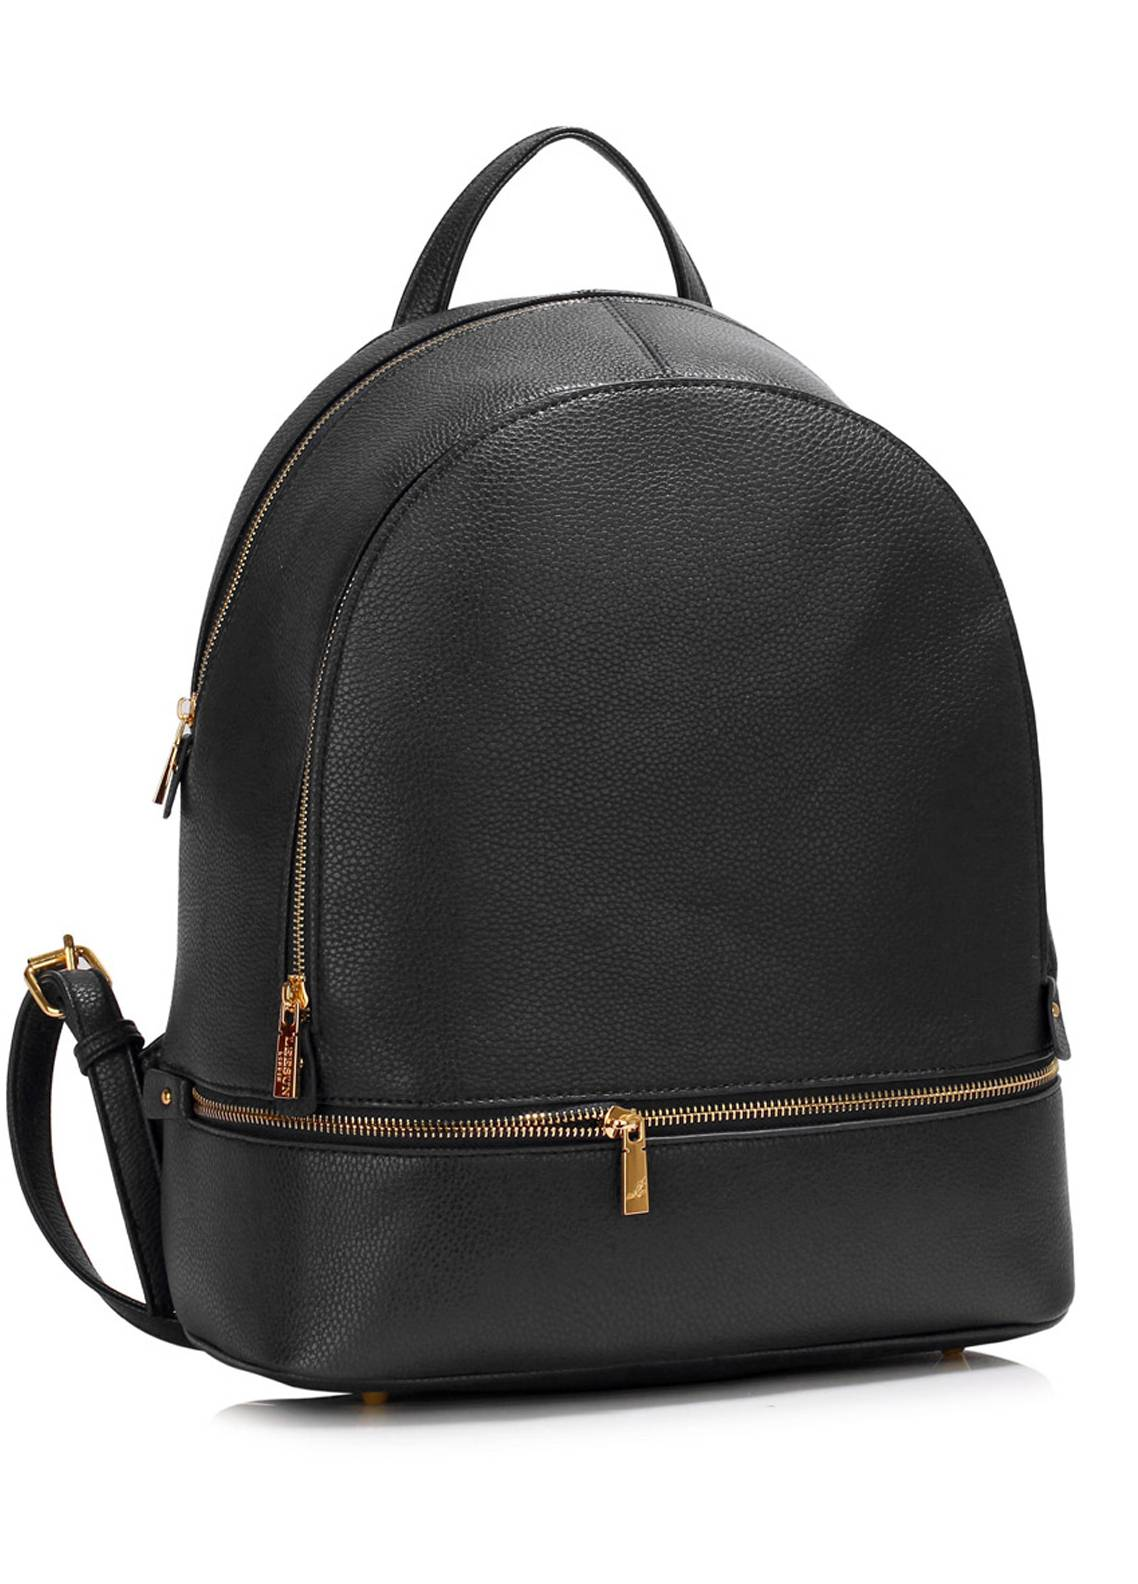 Leesun London  Faux Leather Backpack School Bags  for Unisex  Black with Plain Texture